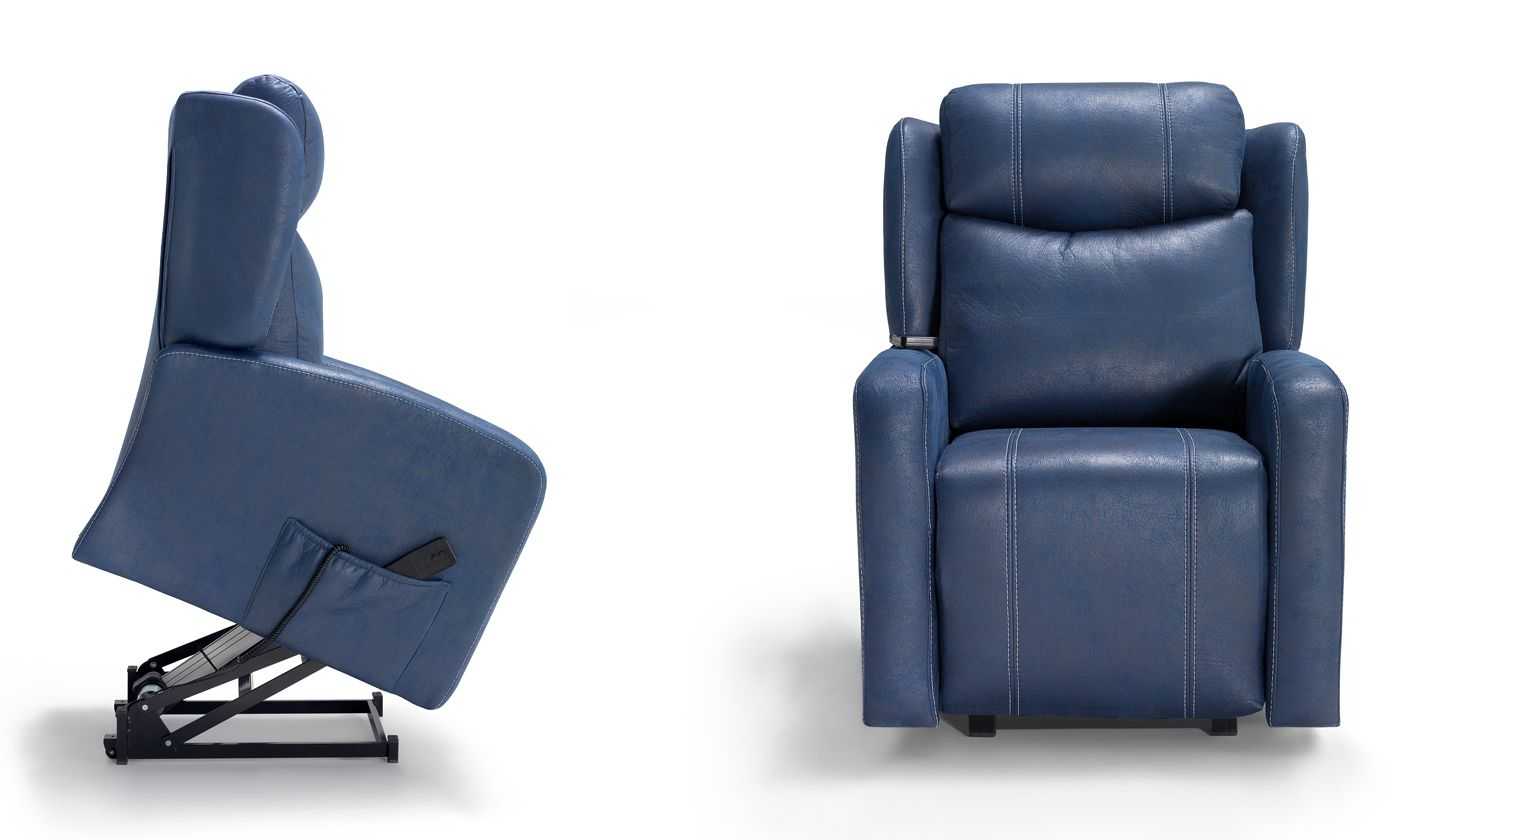 Sill N Relax Minto Sillones Relax ~ Sillones Altos Para Personas Mayores